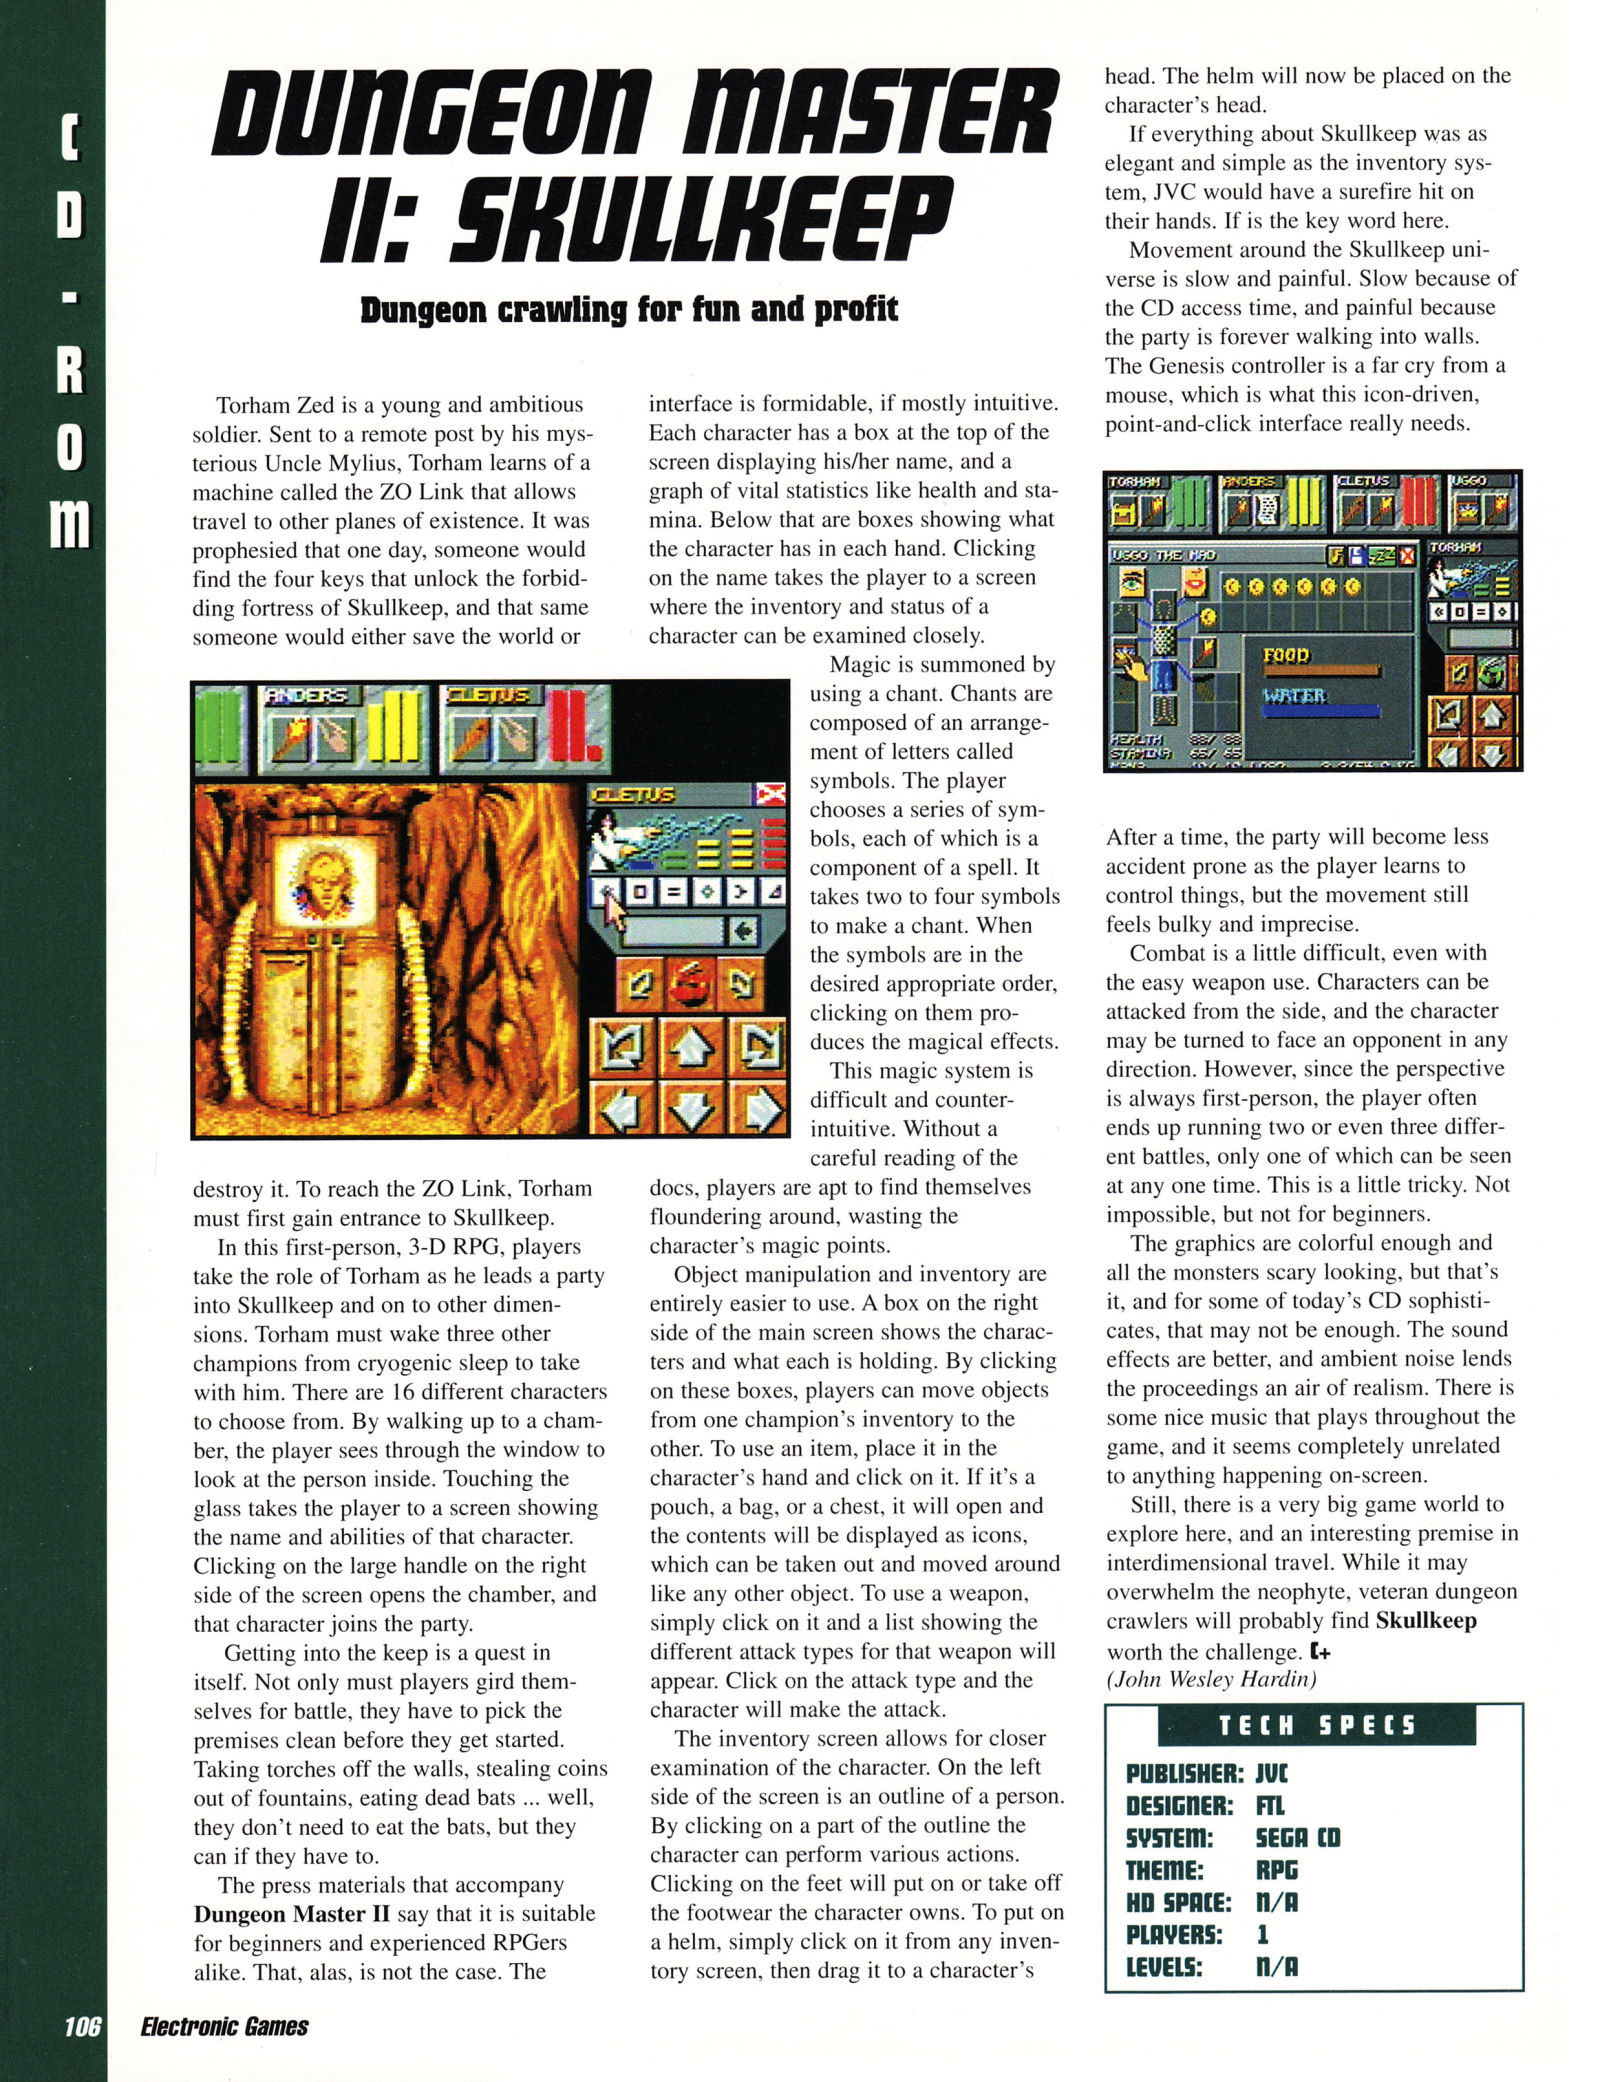 Dungeon Master II for Sega CD Review published in American magazine 'Electronic Games', Vol 2 No 11 August 1994, Page 106